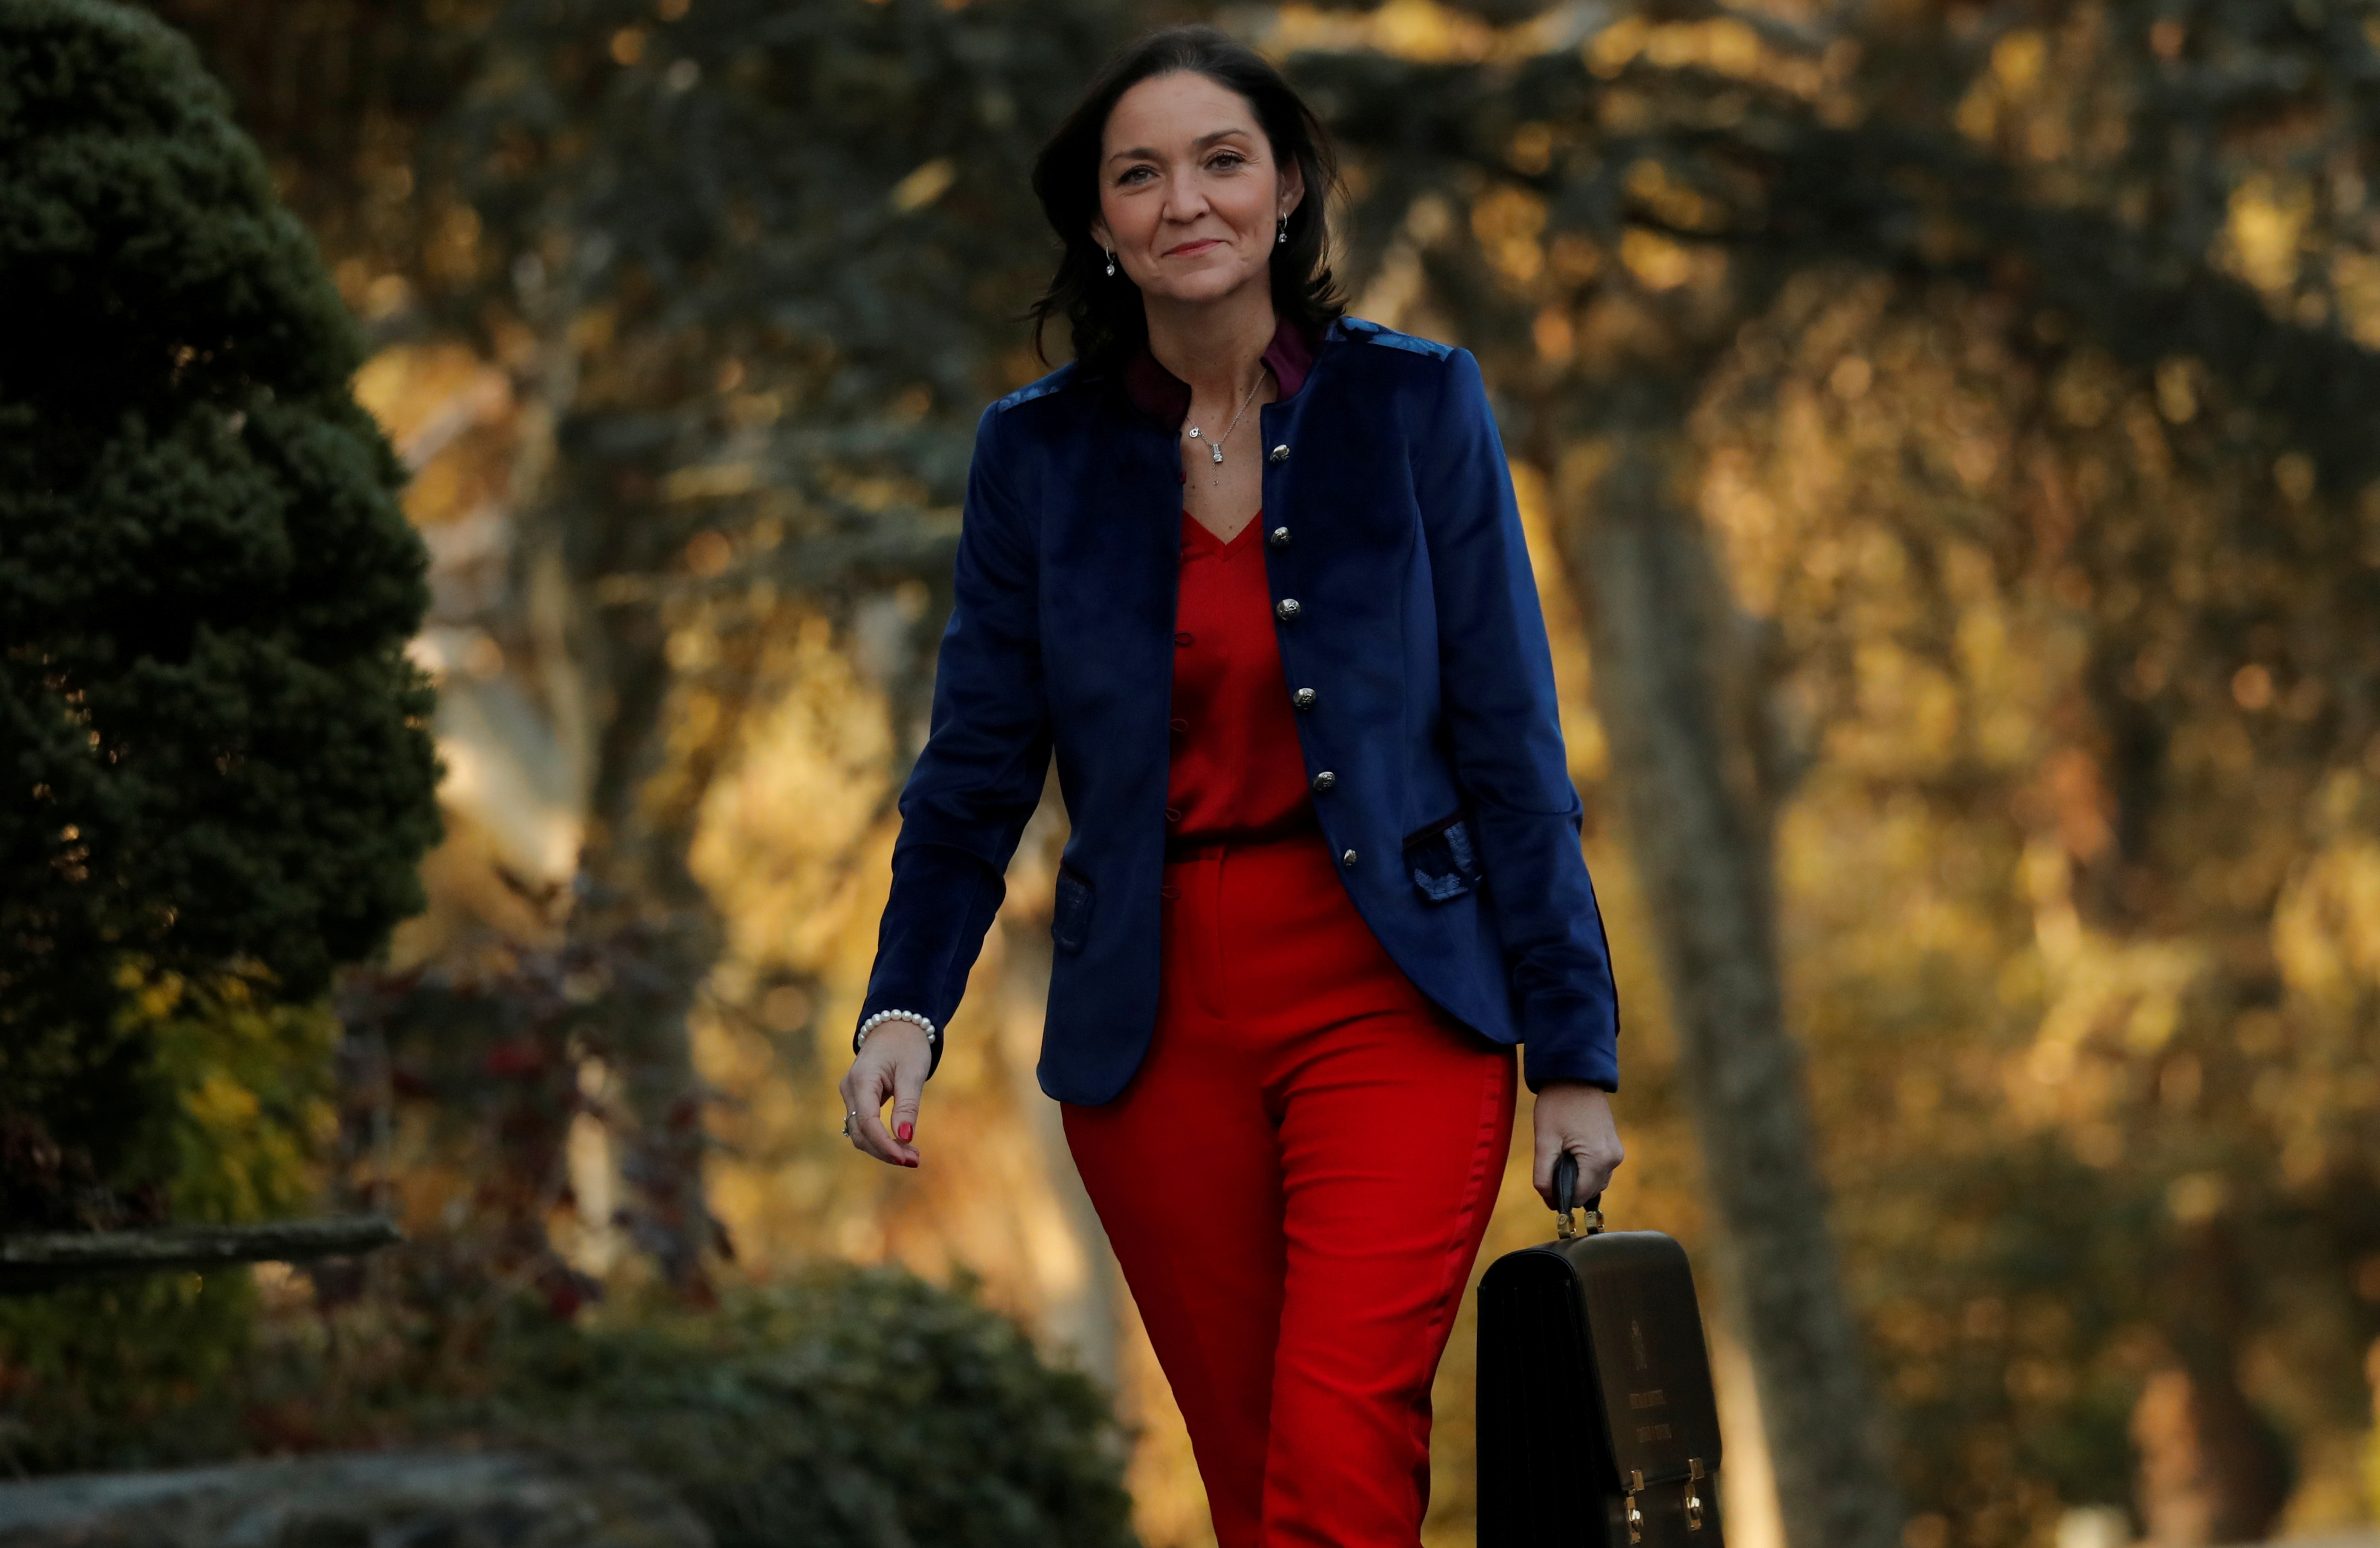 Spain's Industry Minister Maria Reyes Maroto arrives to attend the first cabinet meeting at the Moncloa Palace in Madrid, Spain, January 14, 2020. REUTERS/Susana Vera/File Photo